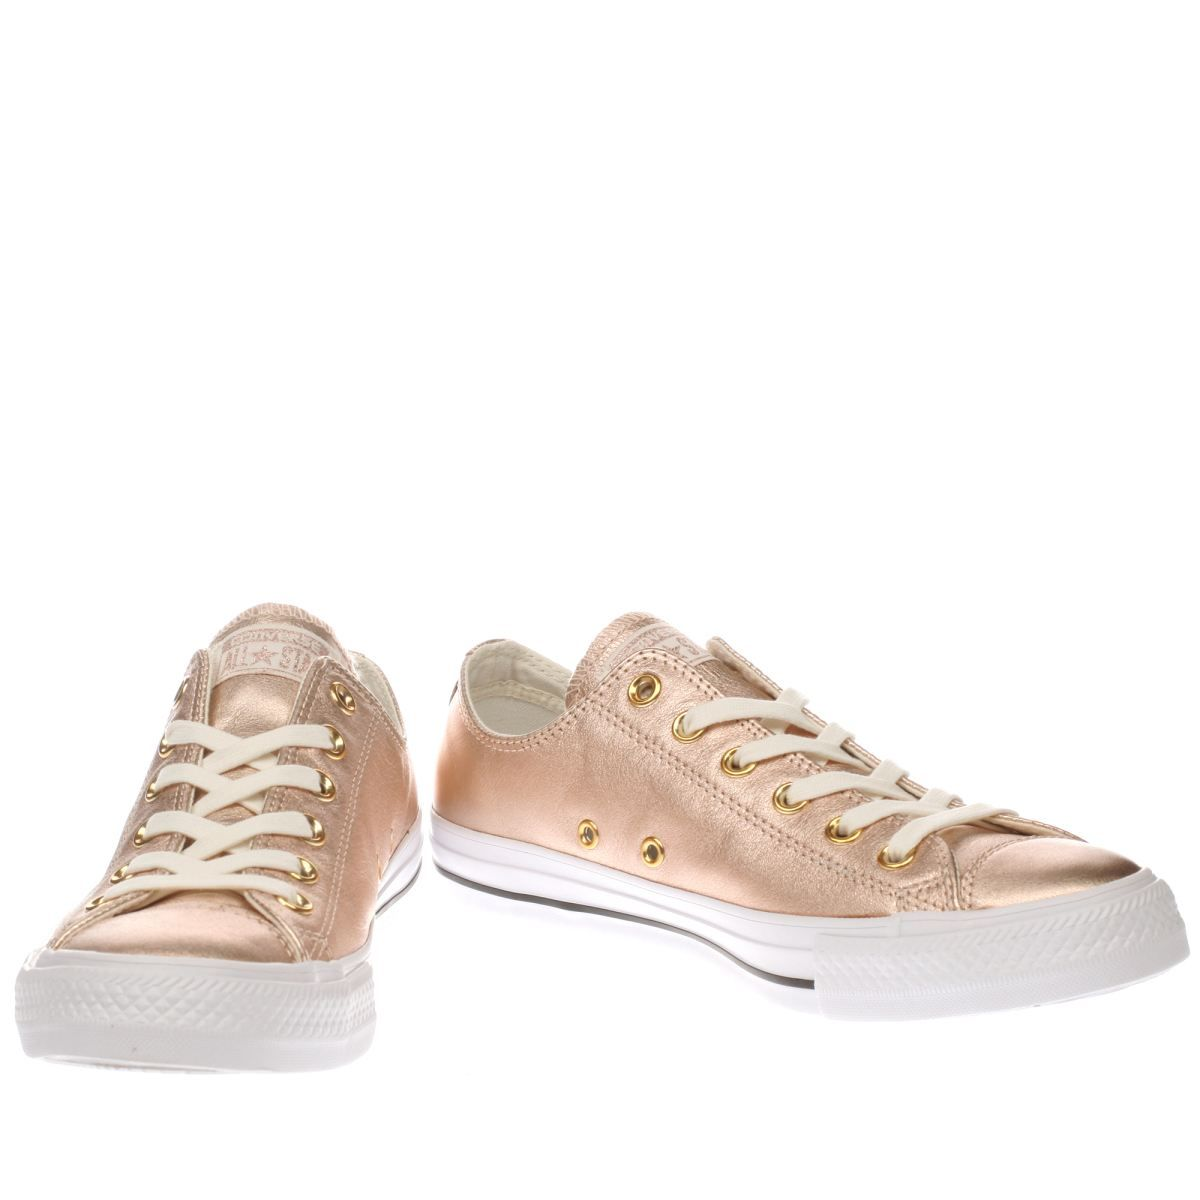 0b5816f098 womens converse rose gold all star metallic leather ox trainers